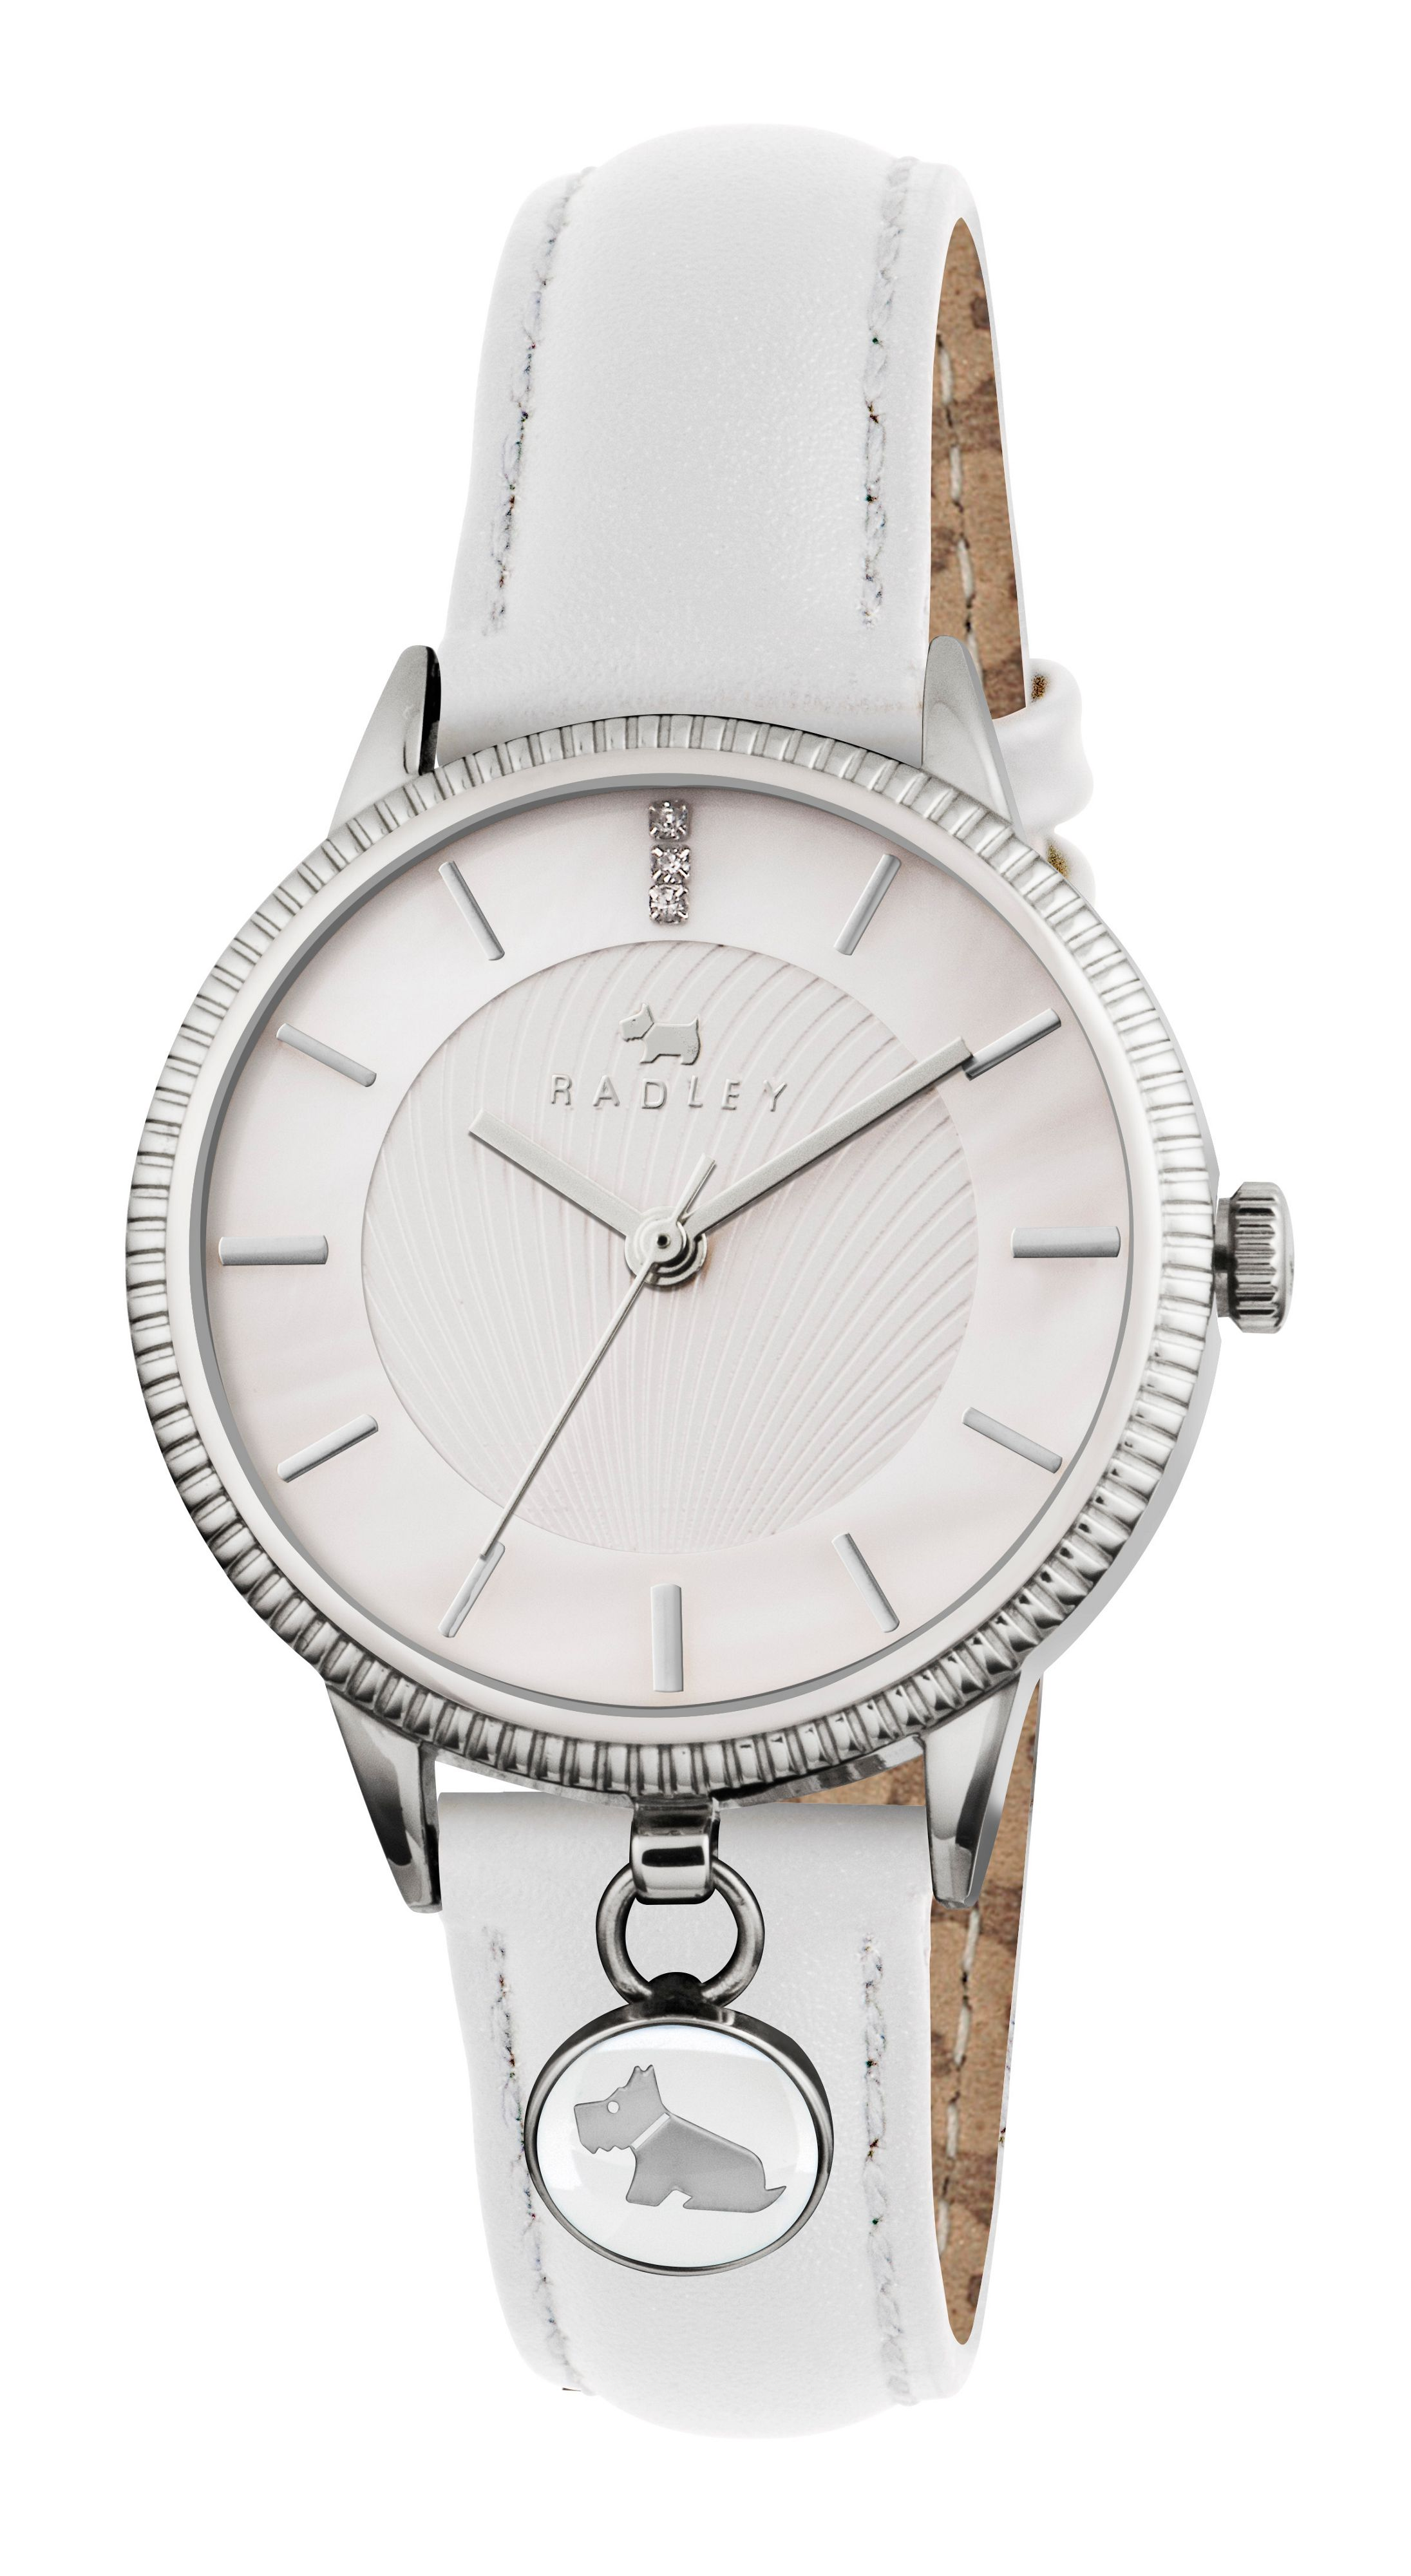 RY2165 white leather strap ladies watch